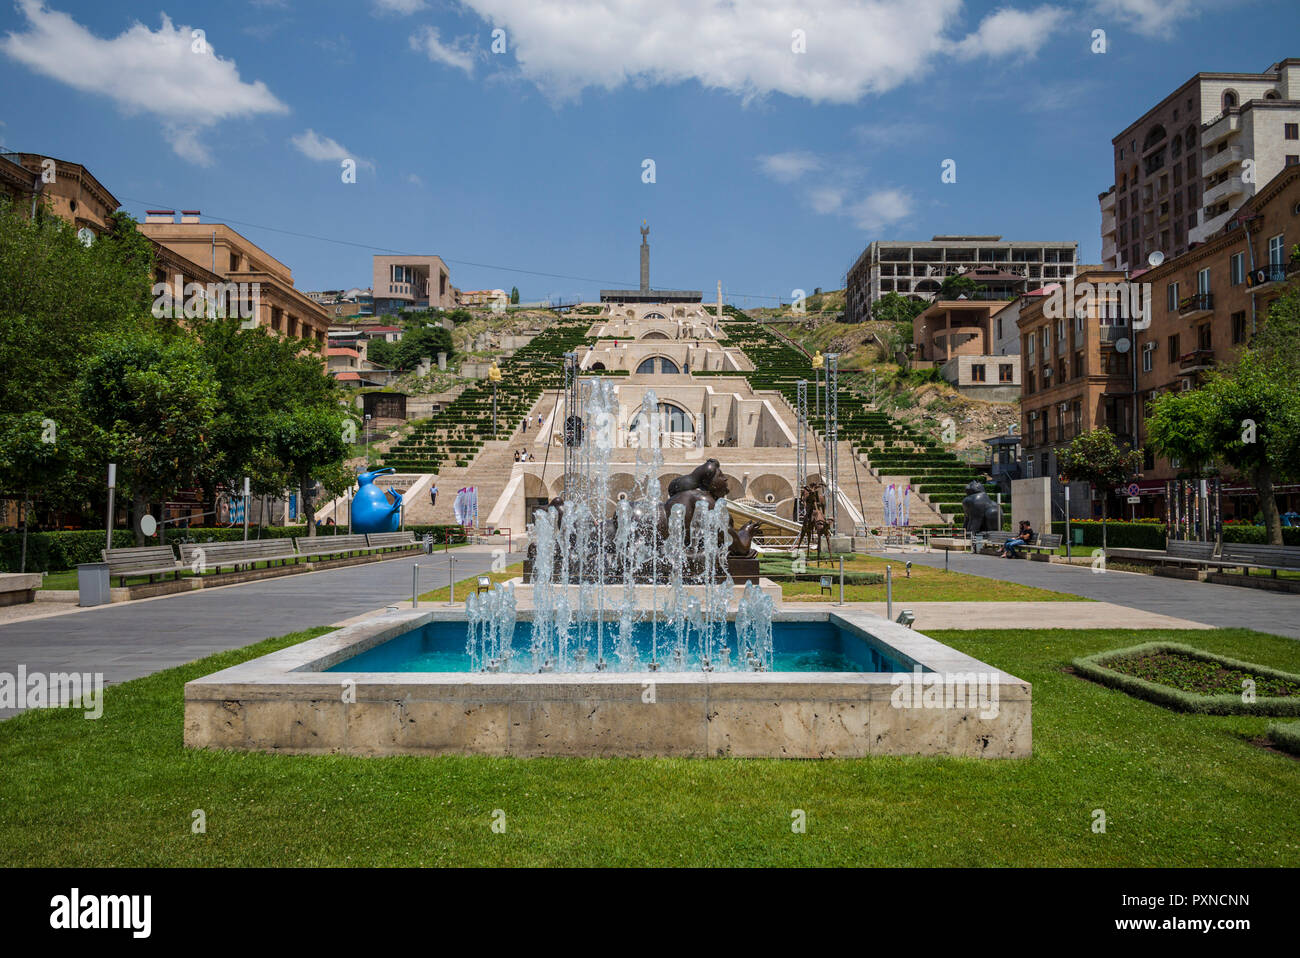 Armenia, Yerevan, The Cascade, view of the fountains - Stock Image